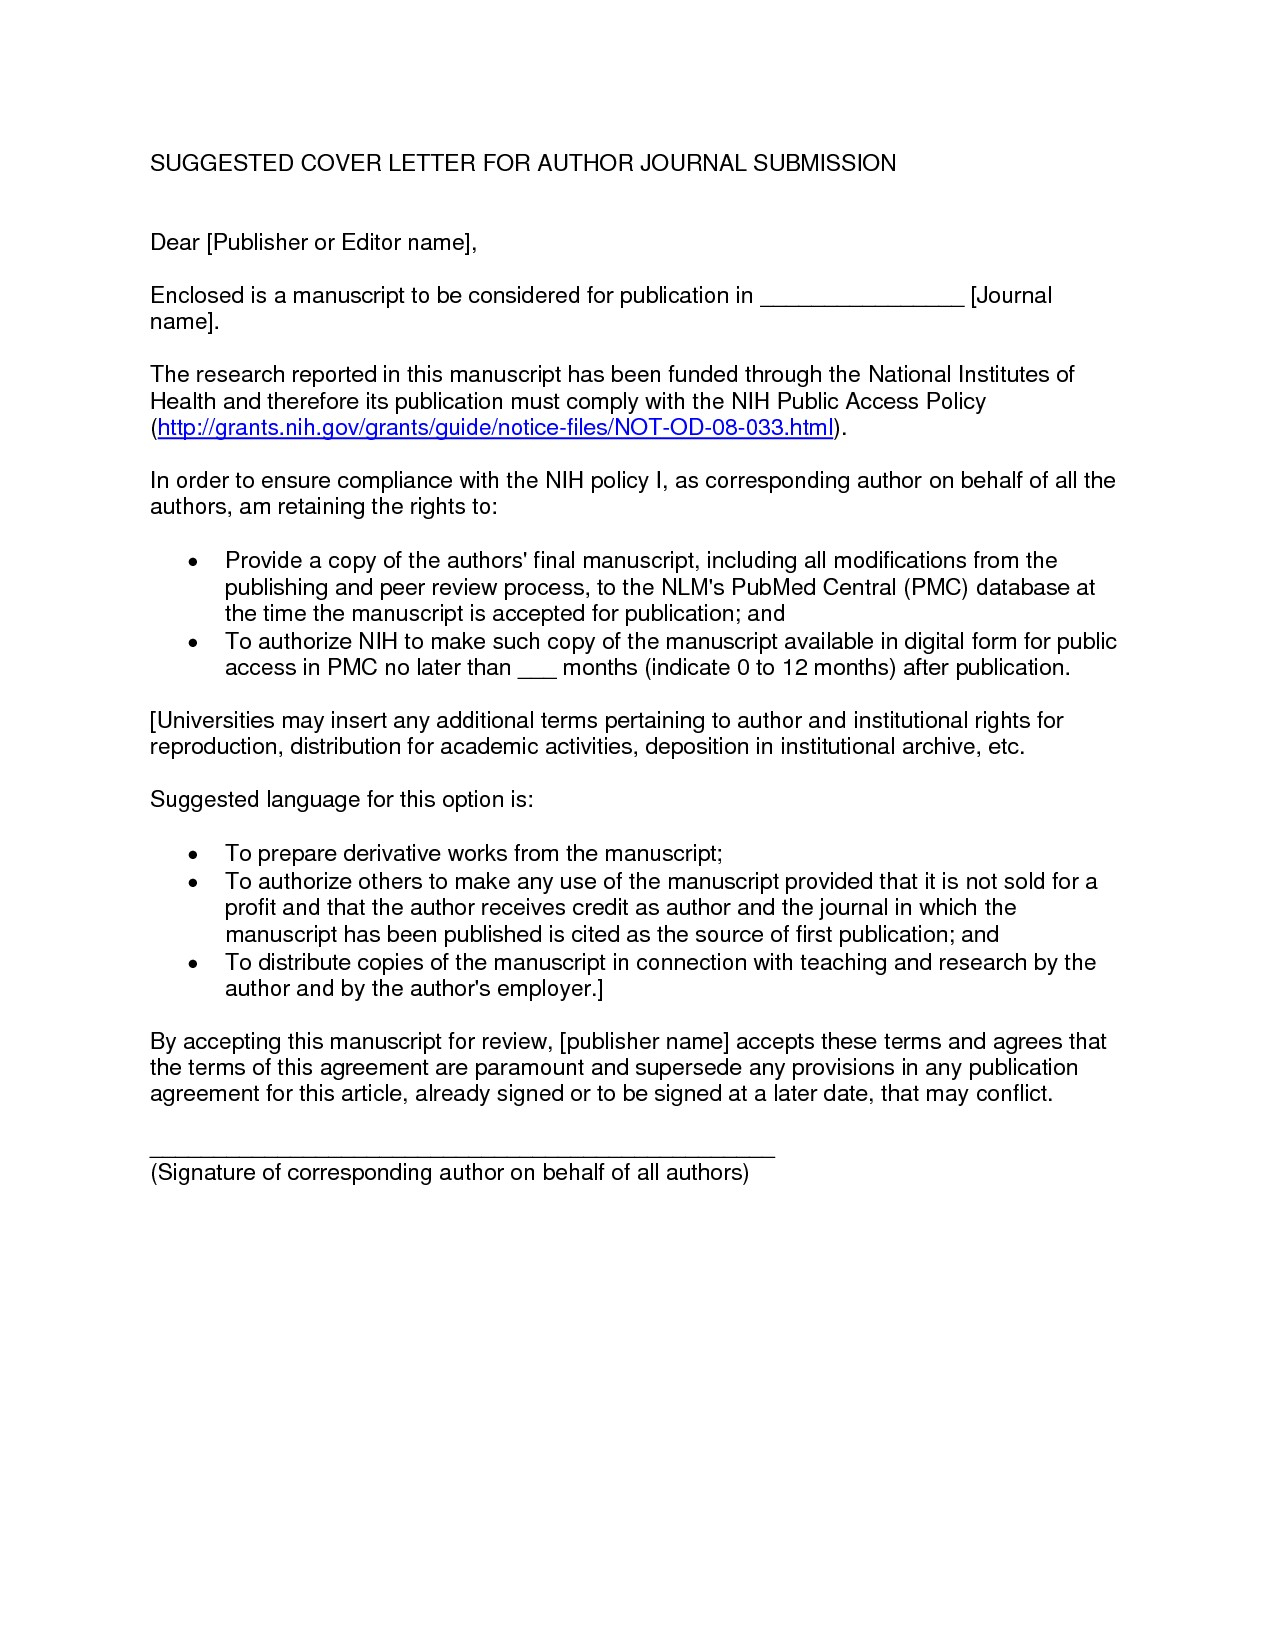 Chargeback Rebuttal Letter Template - Chargeback Rebuttal Letter Example Chargeback Rebuttal Letter